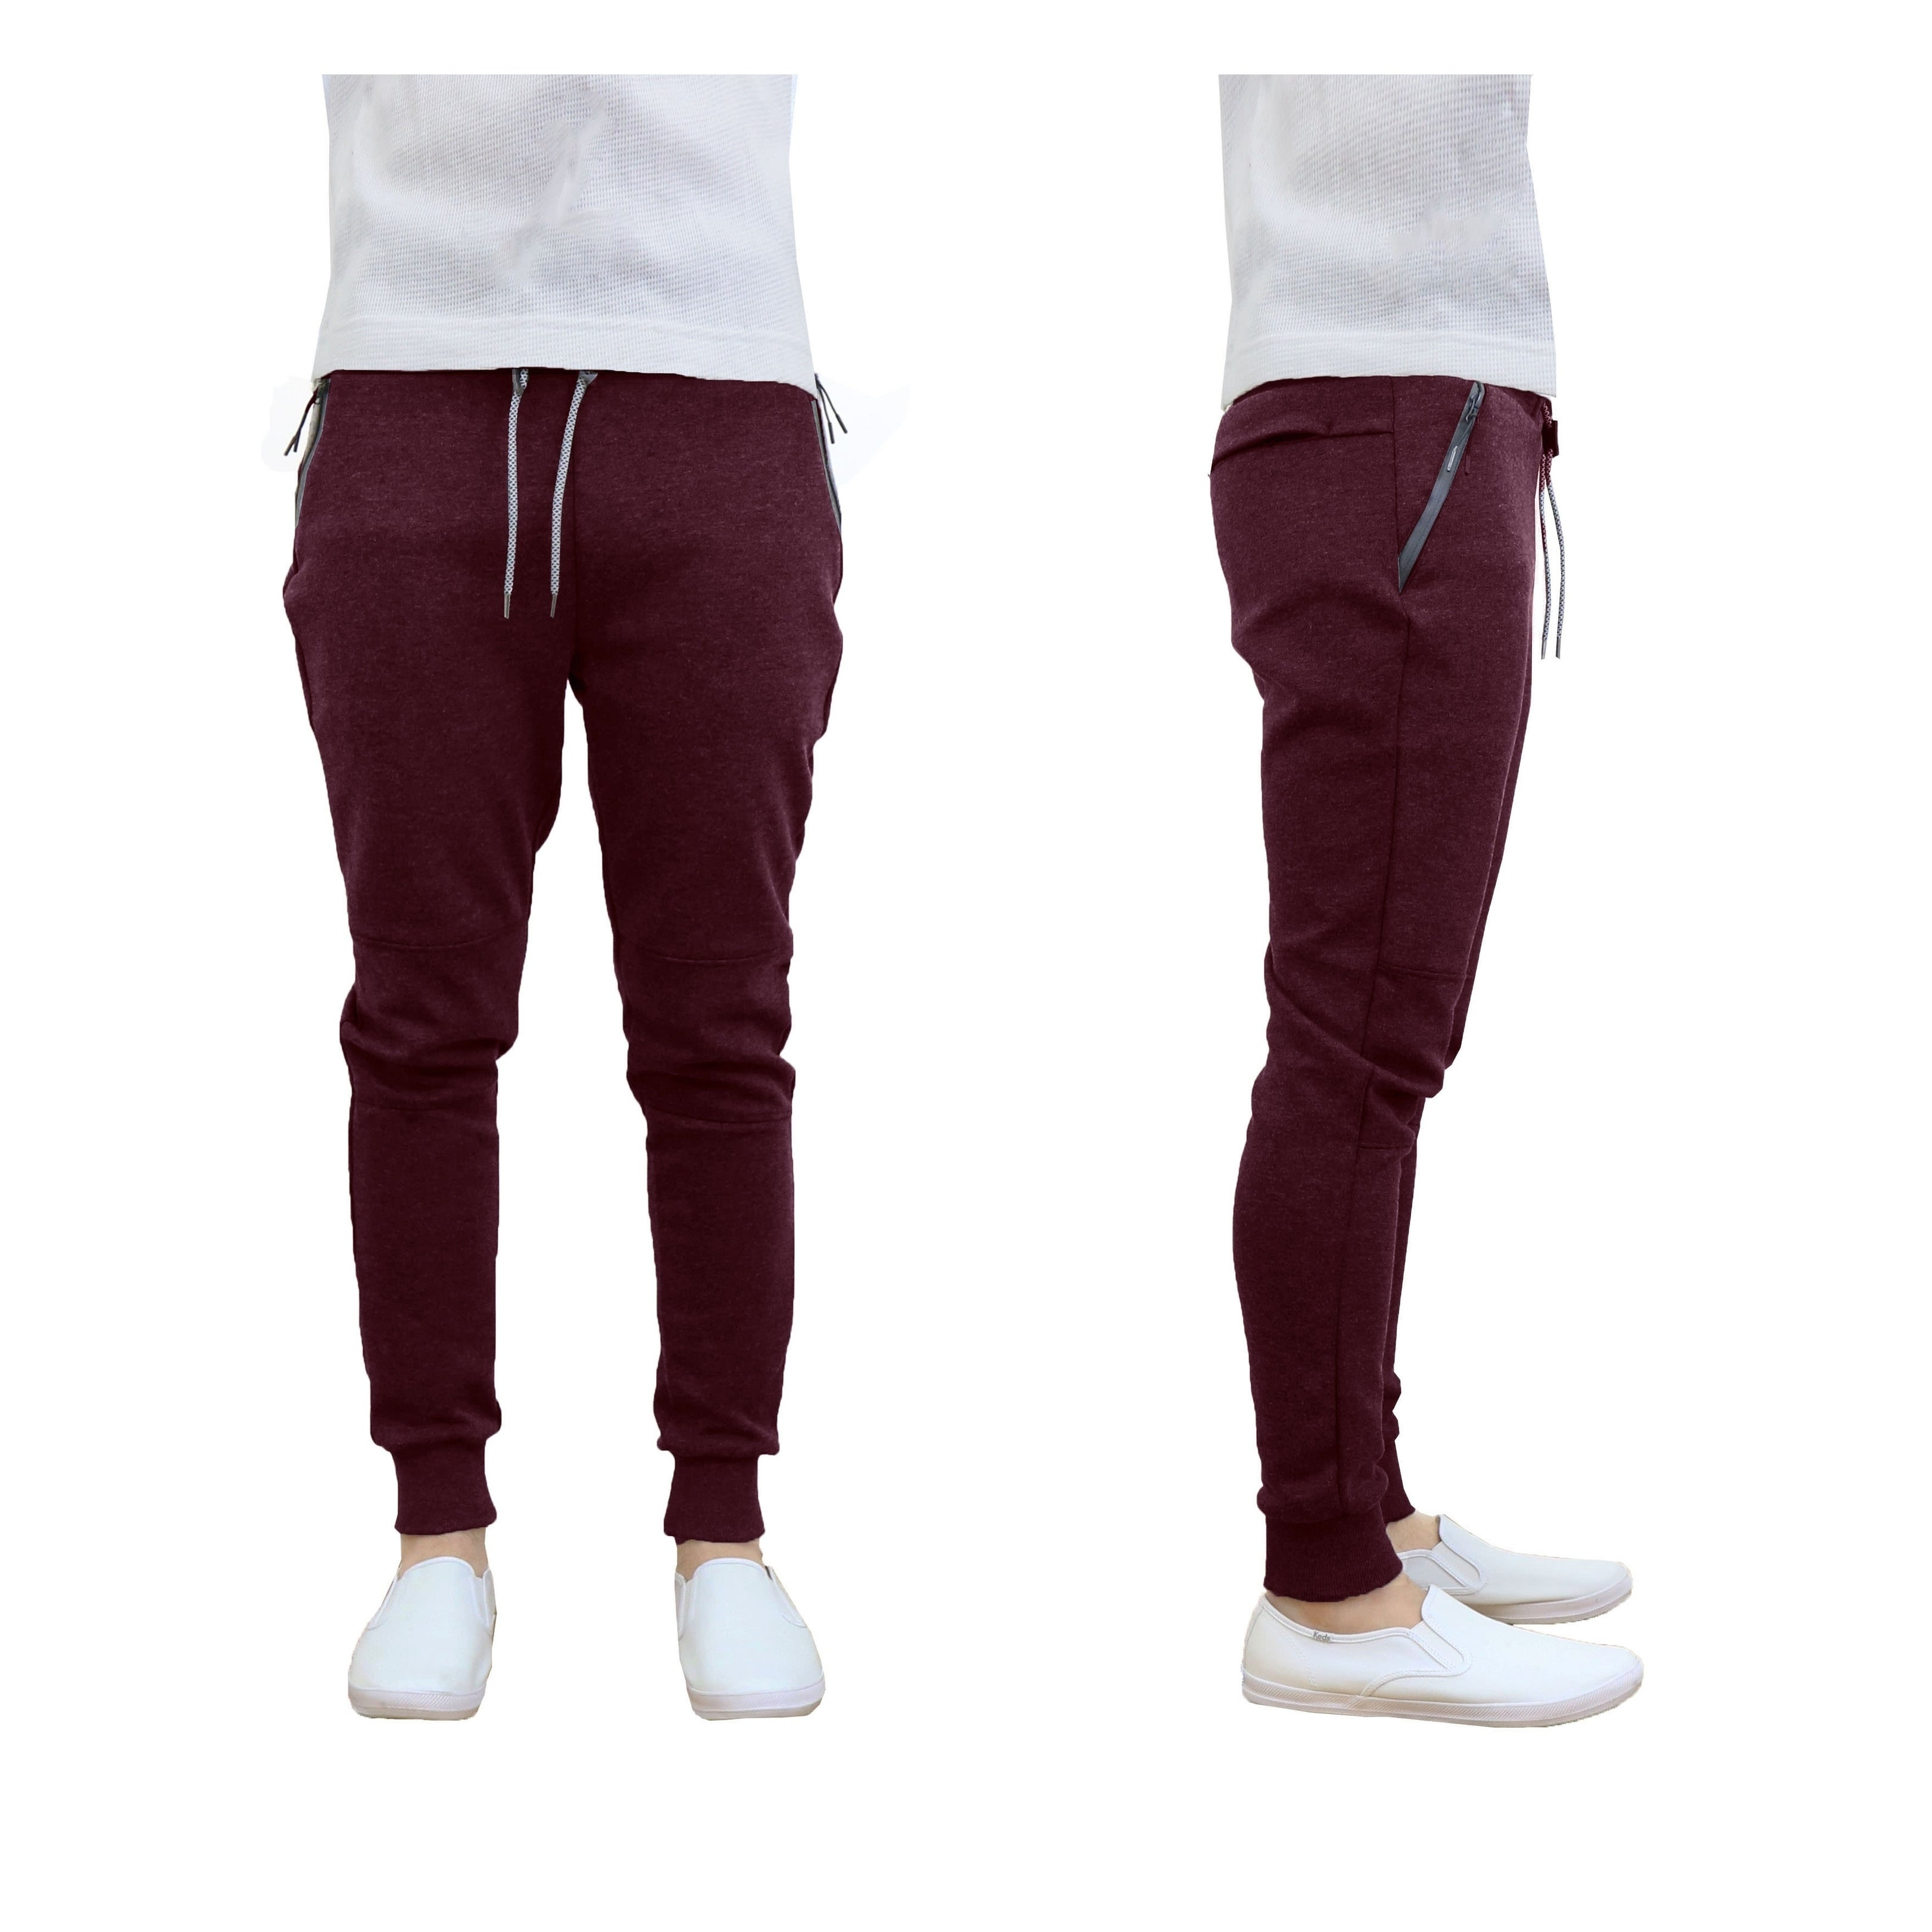 df40283d1056 Shop Galaxy By Harvic Men s Tech Fleece Jogger Sweatpants Lounge Active  Slim Fit - On Sale - Free Shipping On Orders Over  45 - Overstock - 19420045